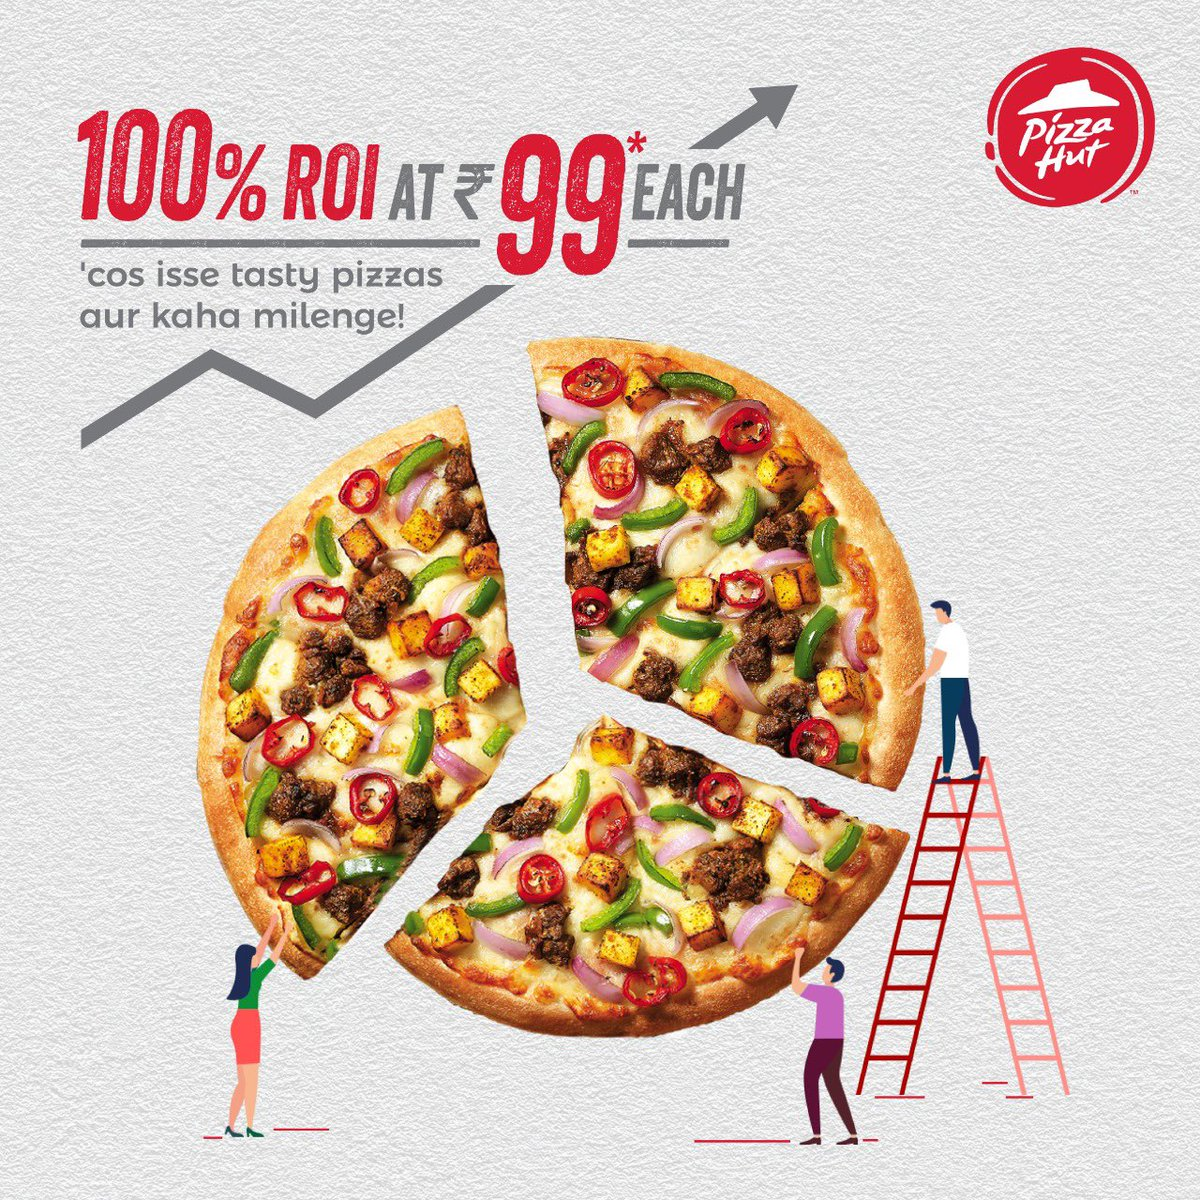 GDP gt Ghar lao delicious Pizzas sirf Rs. 99 mein PizzaHutJavenge Budget2020 T amp C Apply https t.co iHCL37g1Lb